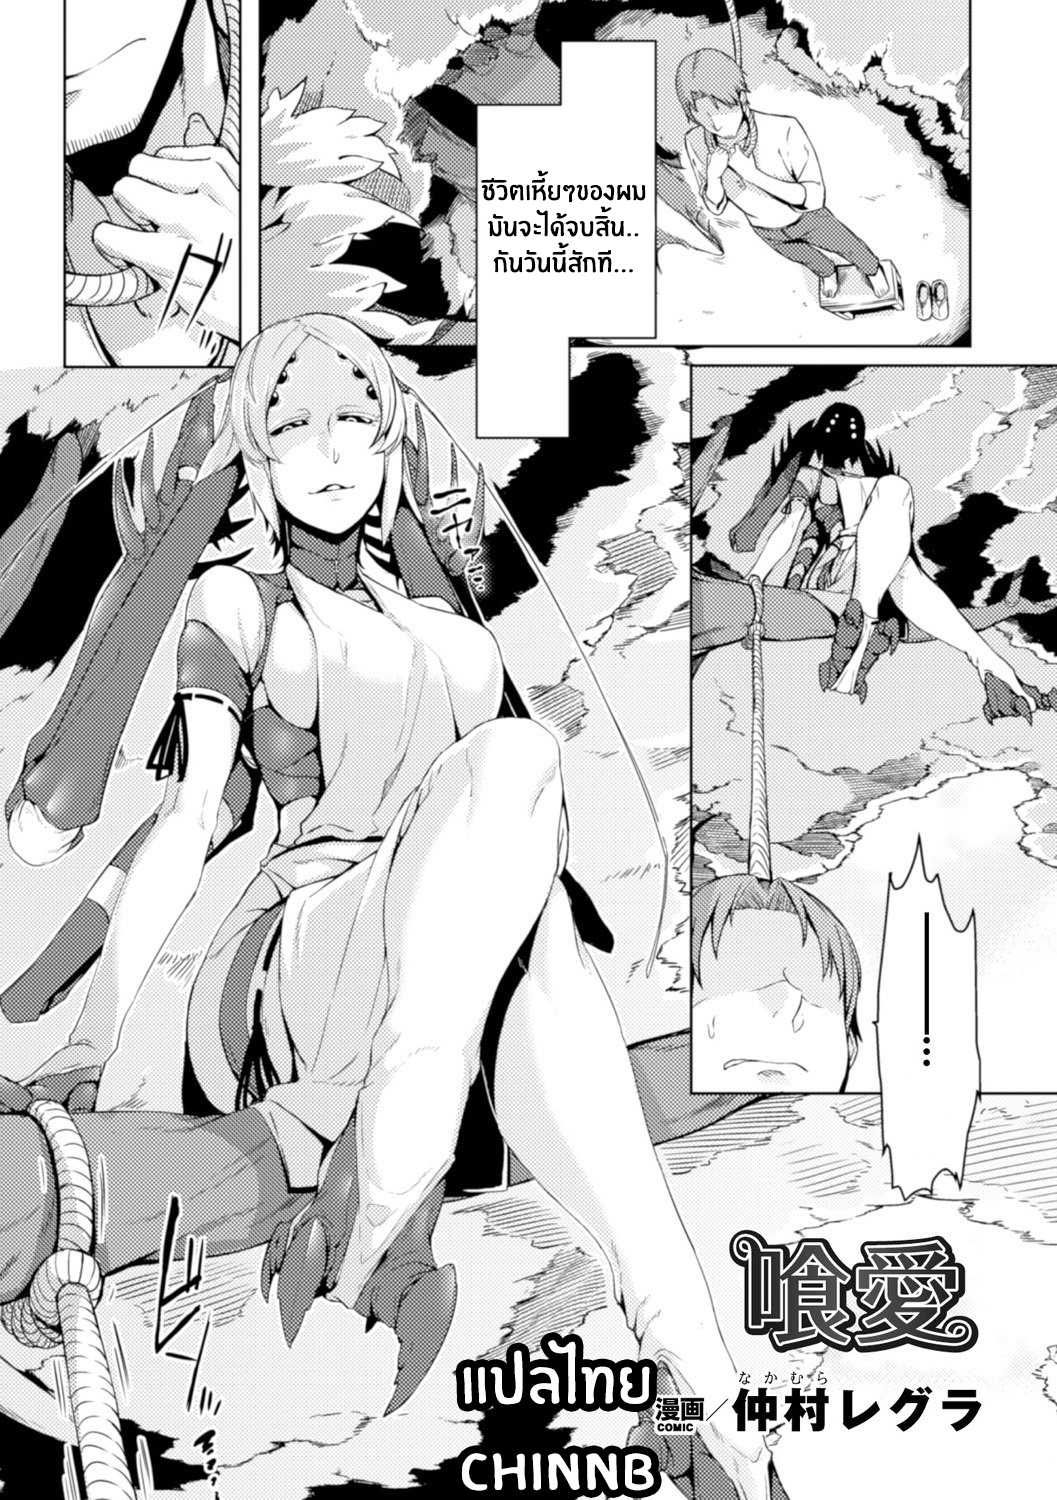 kuu-ai-bessatsu-comic-unreal-monster-musume-paradise-digital-ban-vol-8